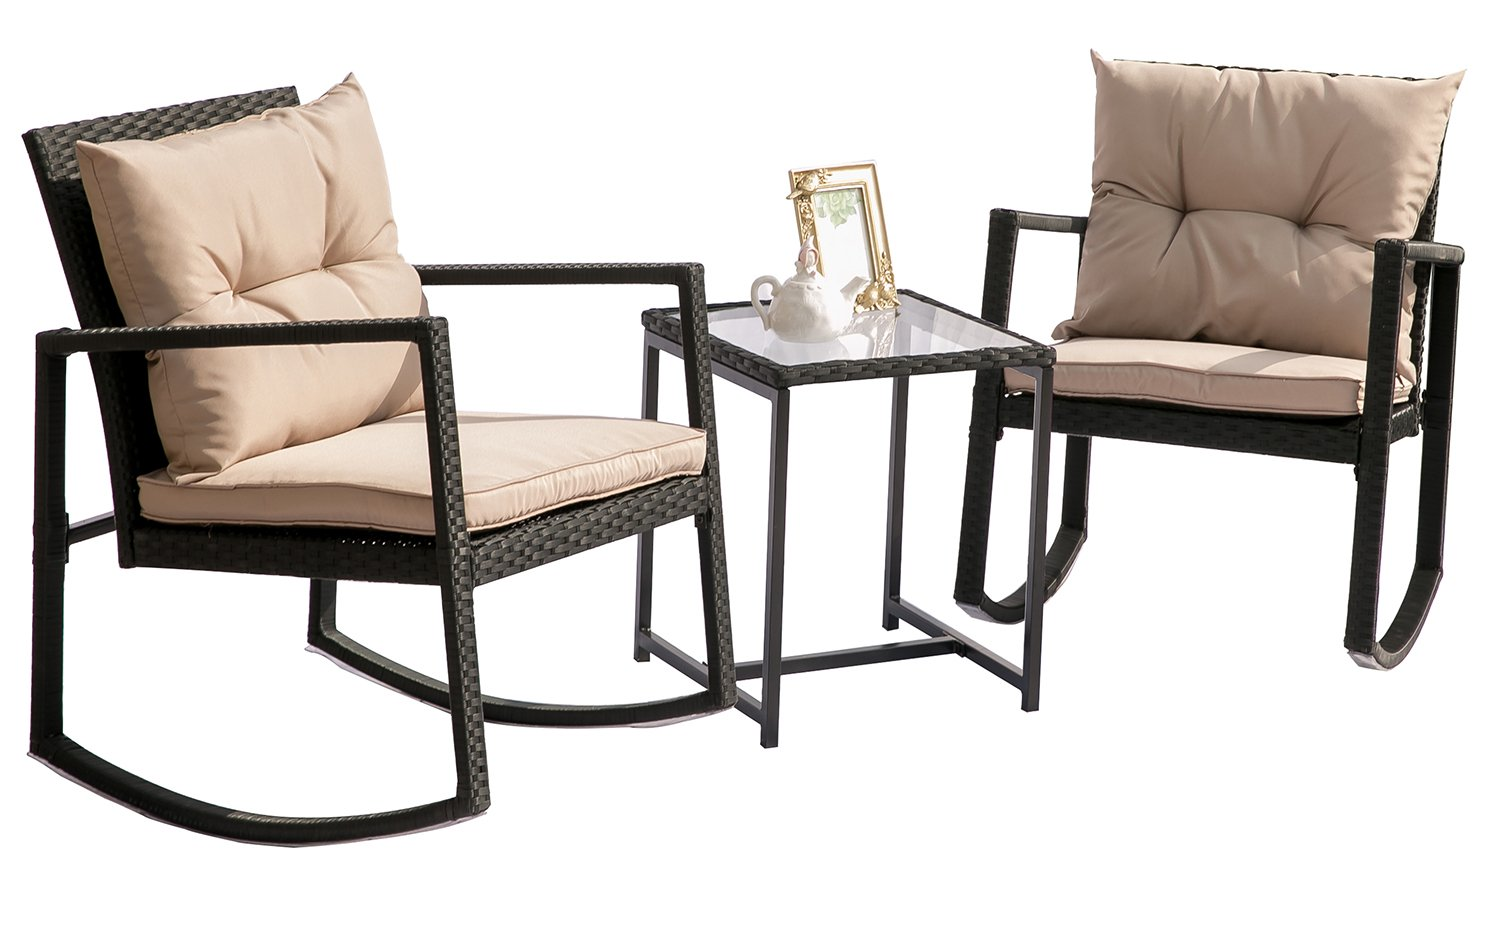 Hq Outdoor Rocking Rattan Bistro Set: 3-Piece Wicker Furniture - Two Chairs with Glass Coffee Table (Brown Cushion)